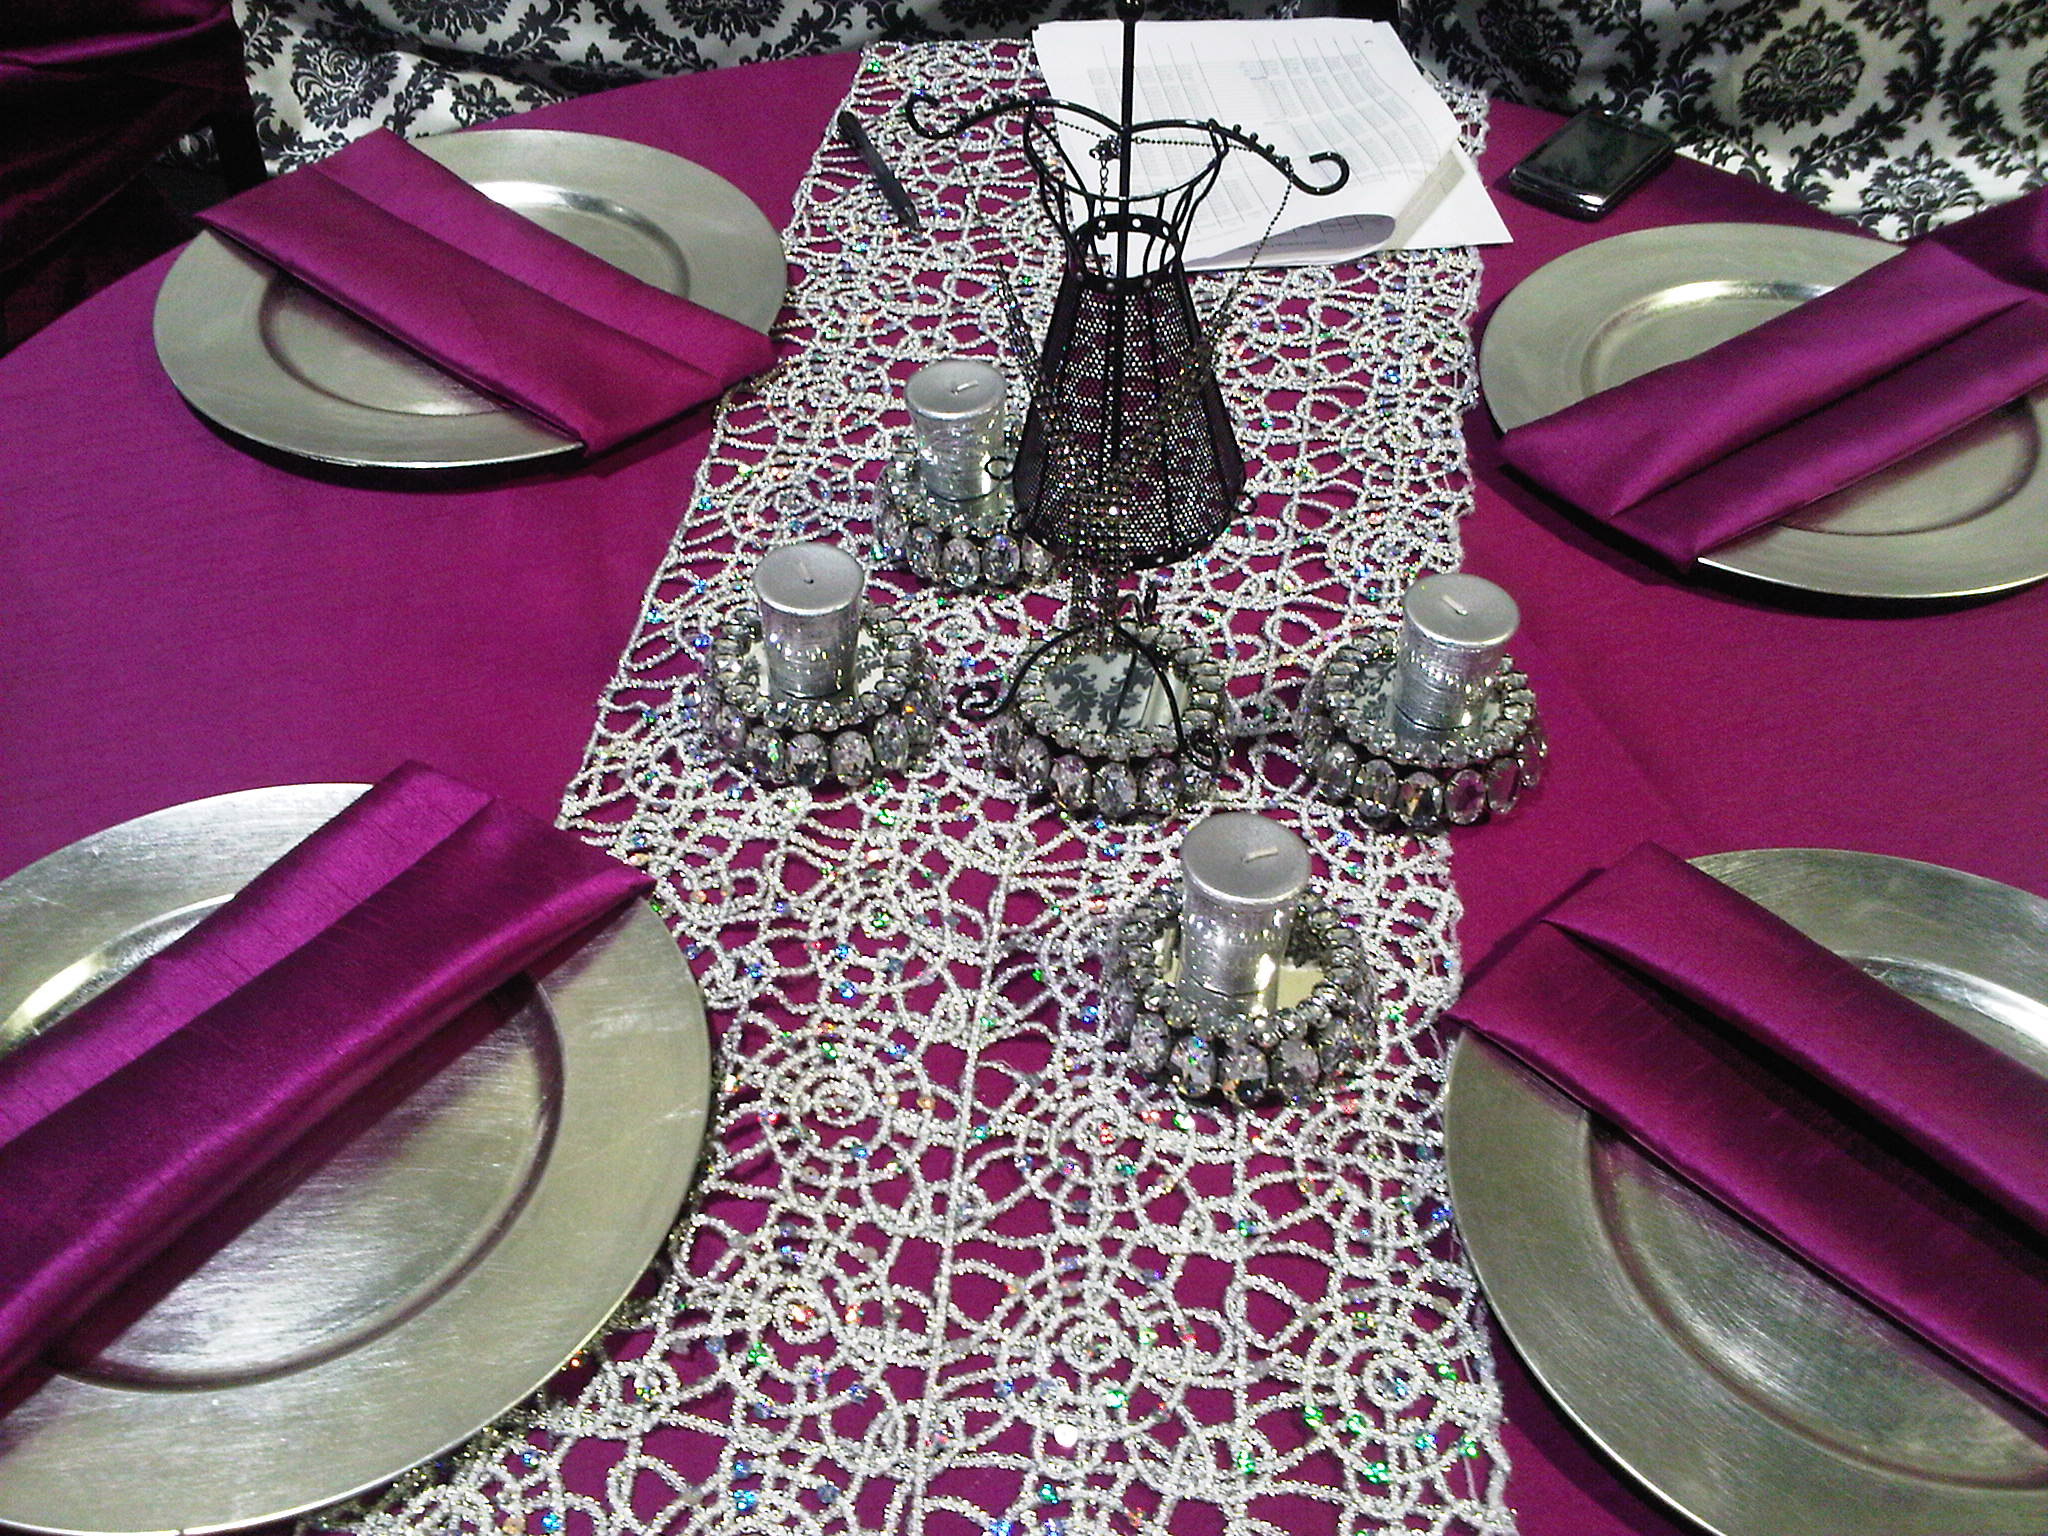 Fuschia and Black Table Setting